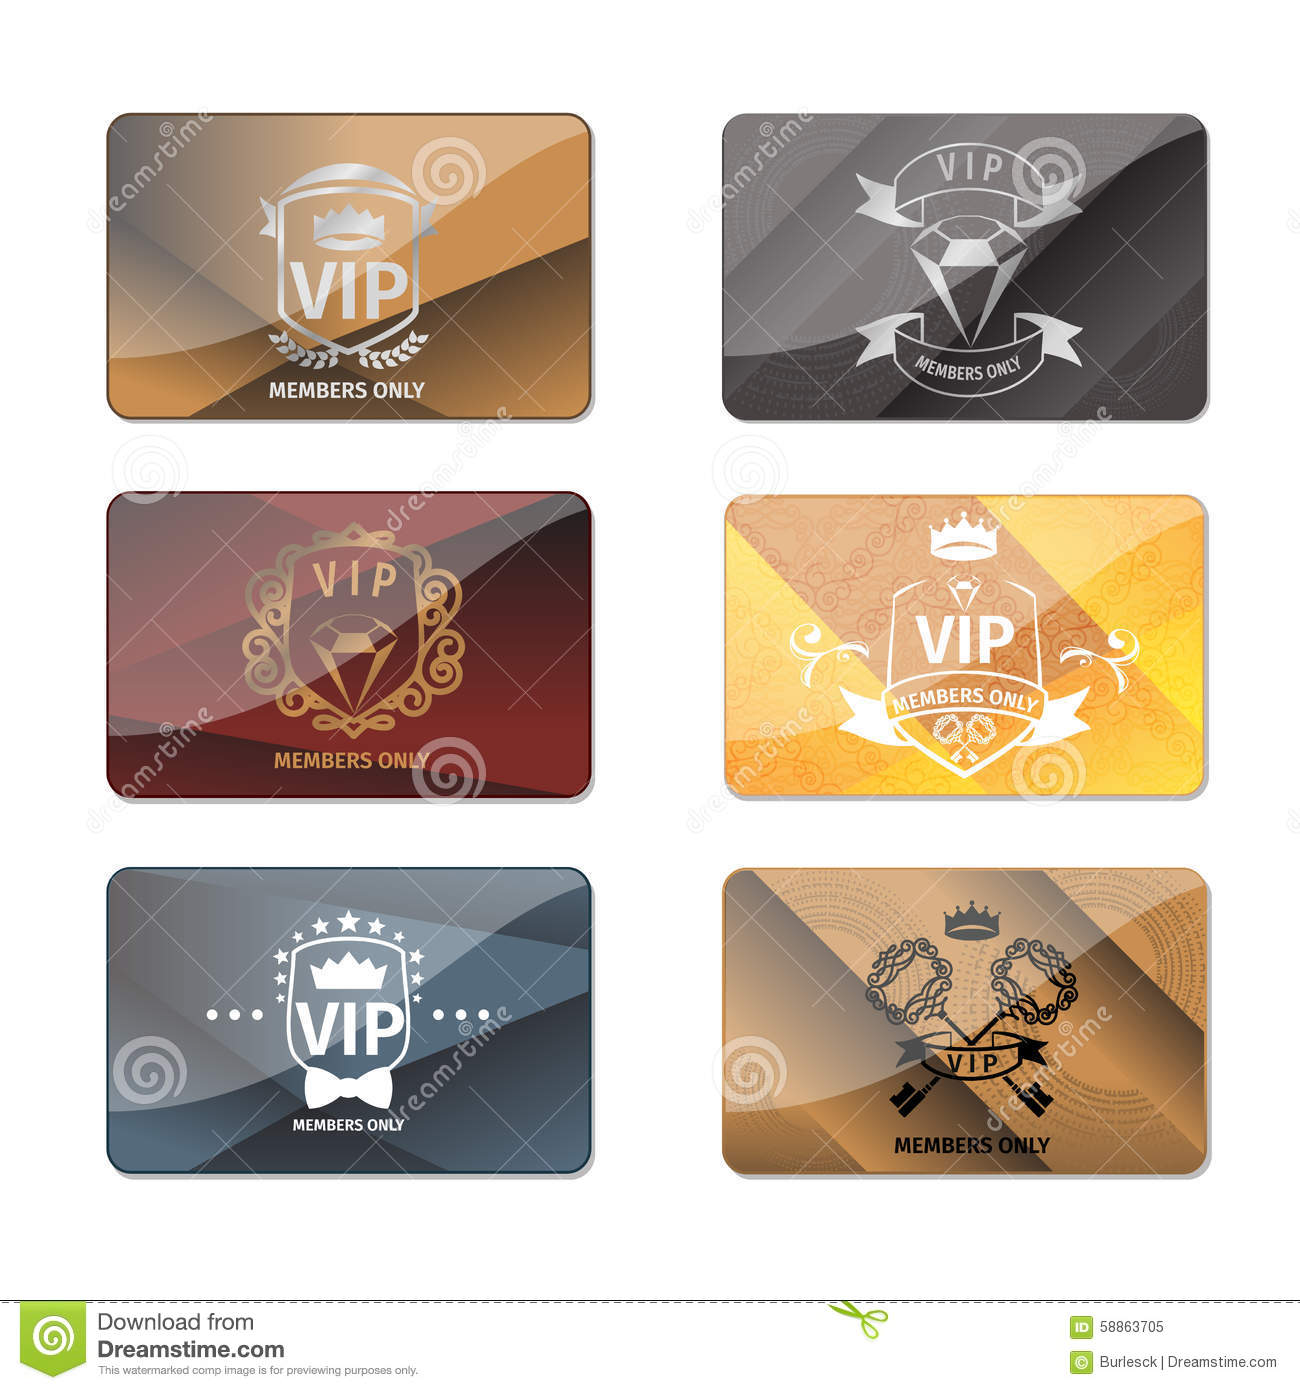 VIP Club Members Only Premium Cards Vector Set Vector – Club Card Design